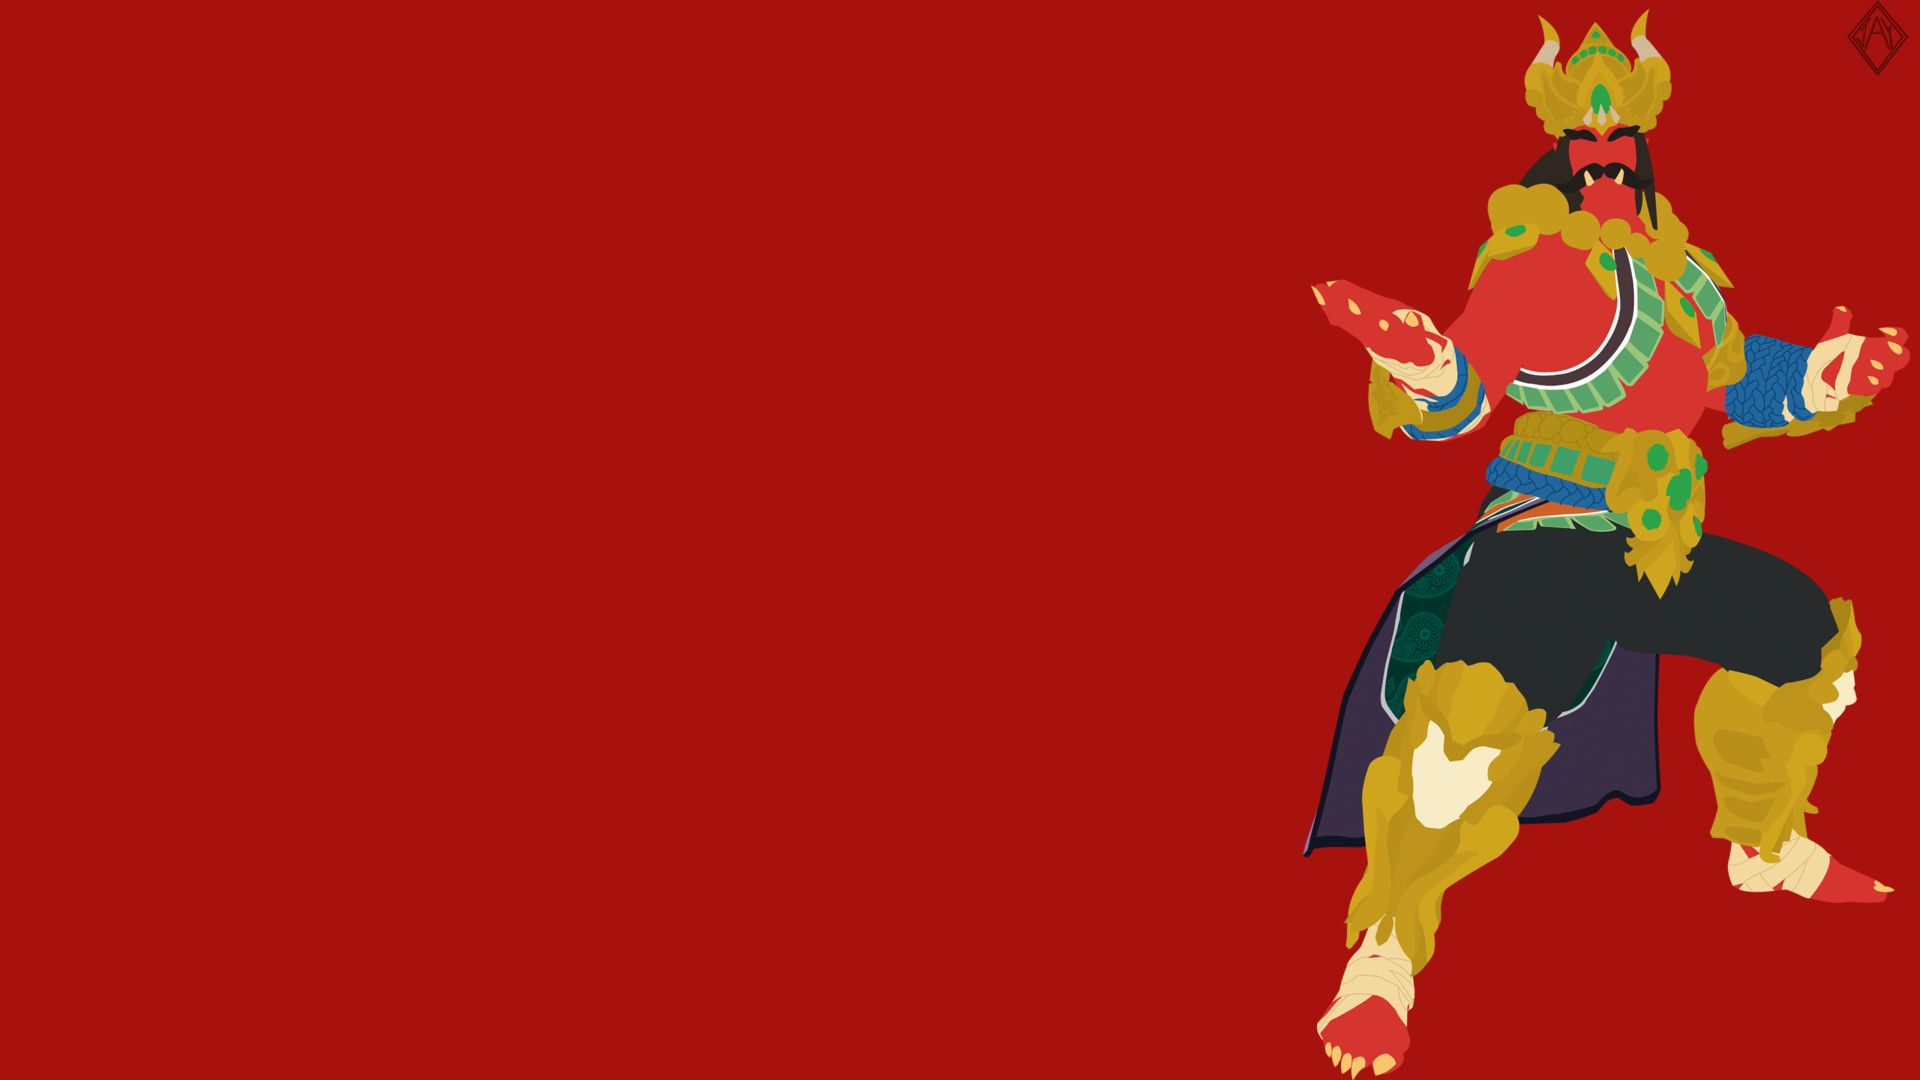 Artstation Smite Ravana Minimalist Wallpaper Jay R Minimalist Wallpaper Wallpaper Artwork